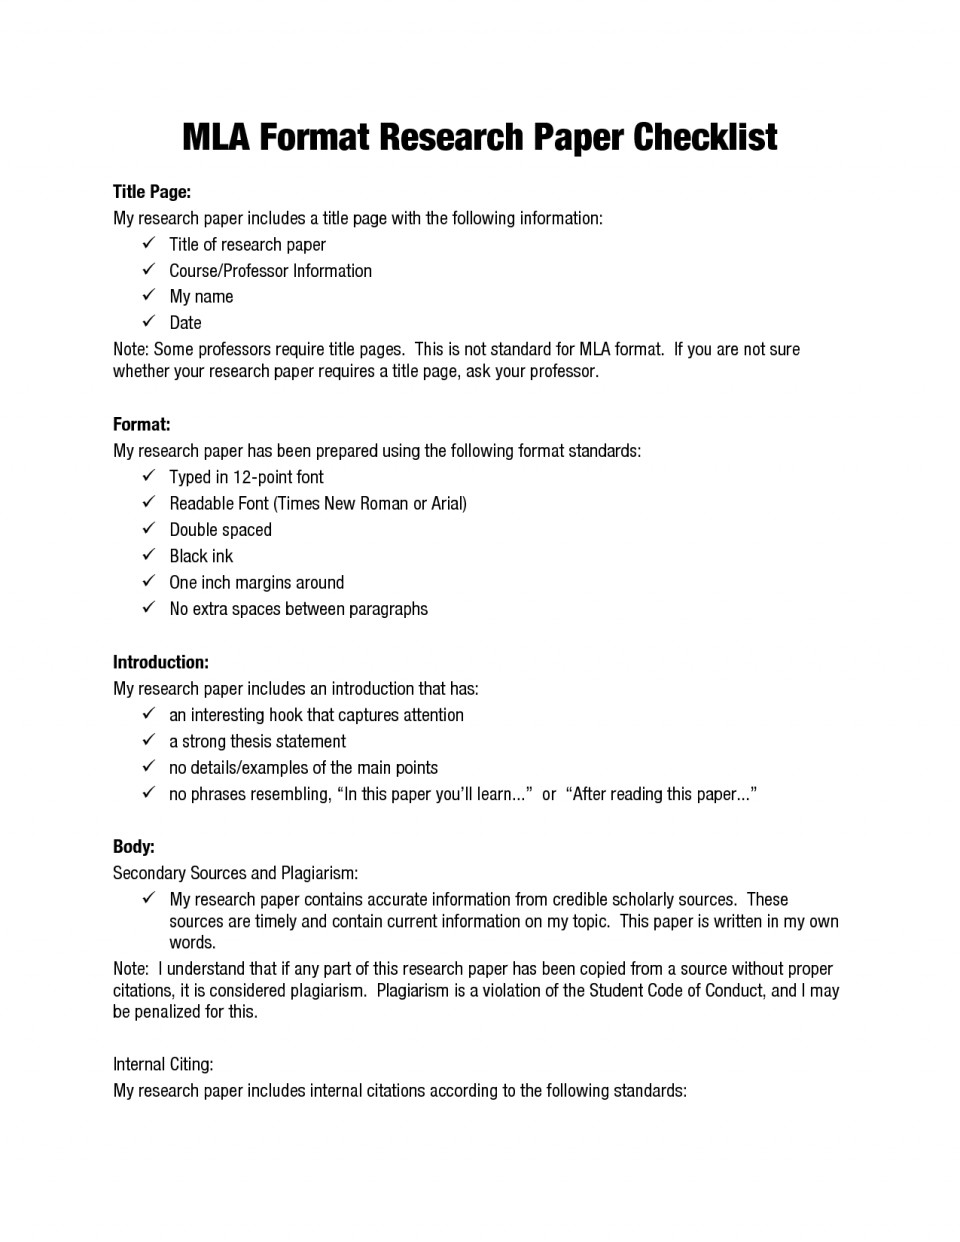 001 Research Paper Mla Format Singular Papers Checklist Outline Template 960